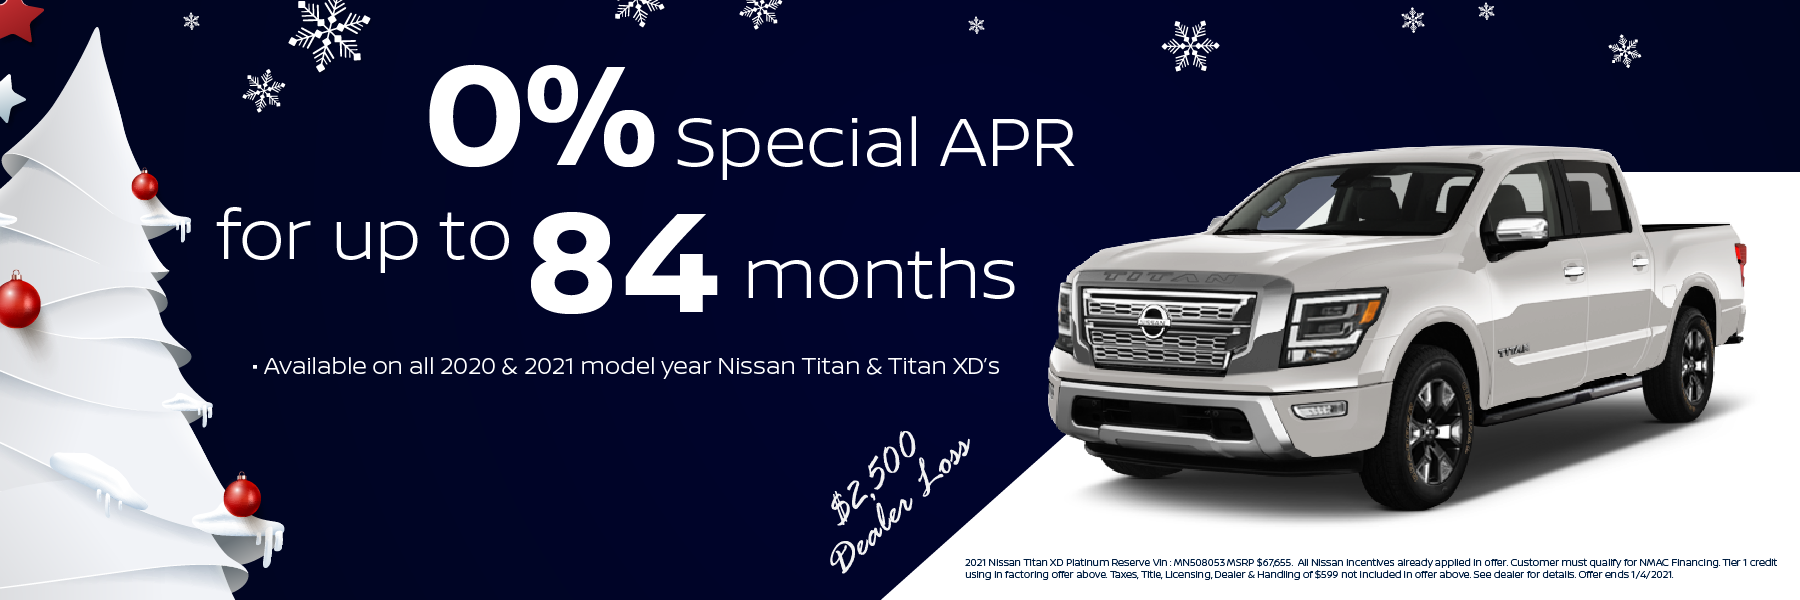 Best 2020 and 2021 Nissan Titan Lease and Purchase Specials in Denver, CO